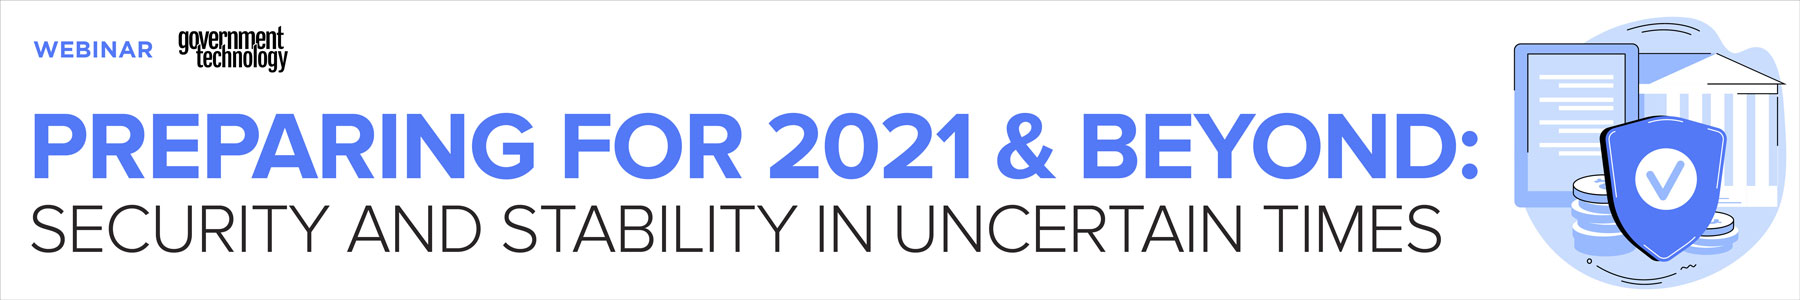 Preparing for 2021 and Beyond: Security and Stability in Uncertain Times